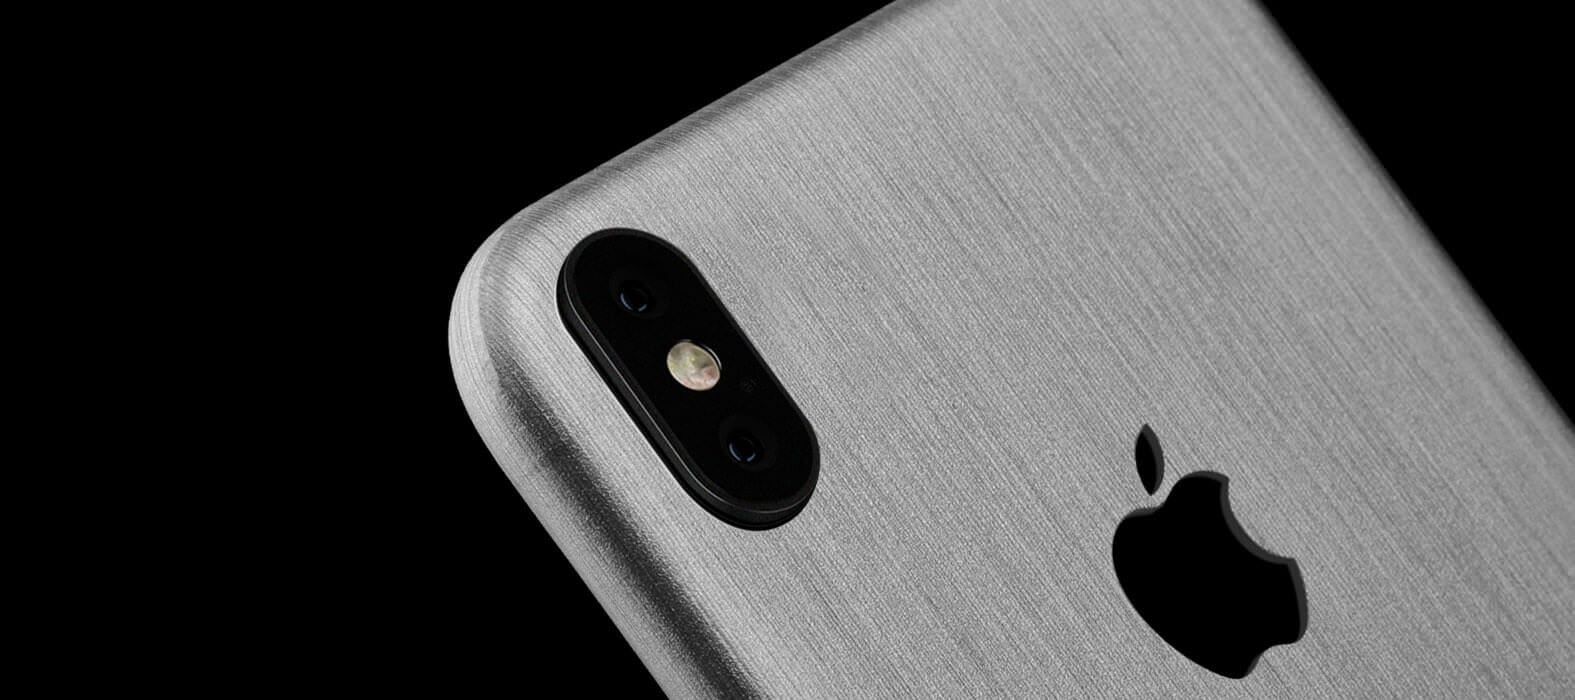 Brushed Titanium iPhone X Skins, Wraps & decals | Titanium